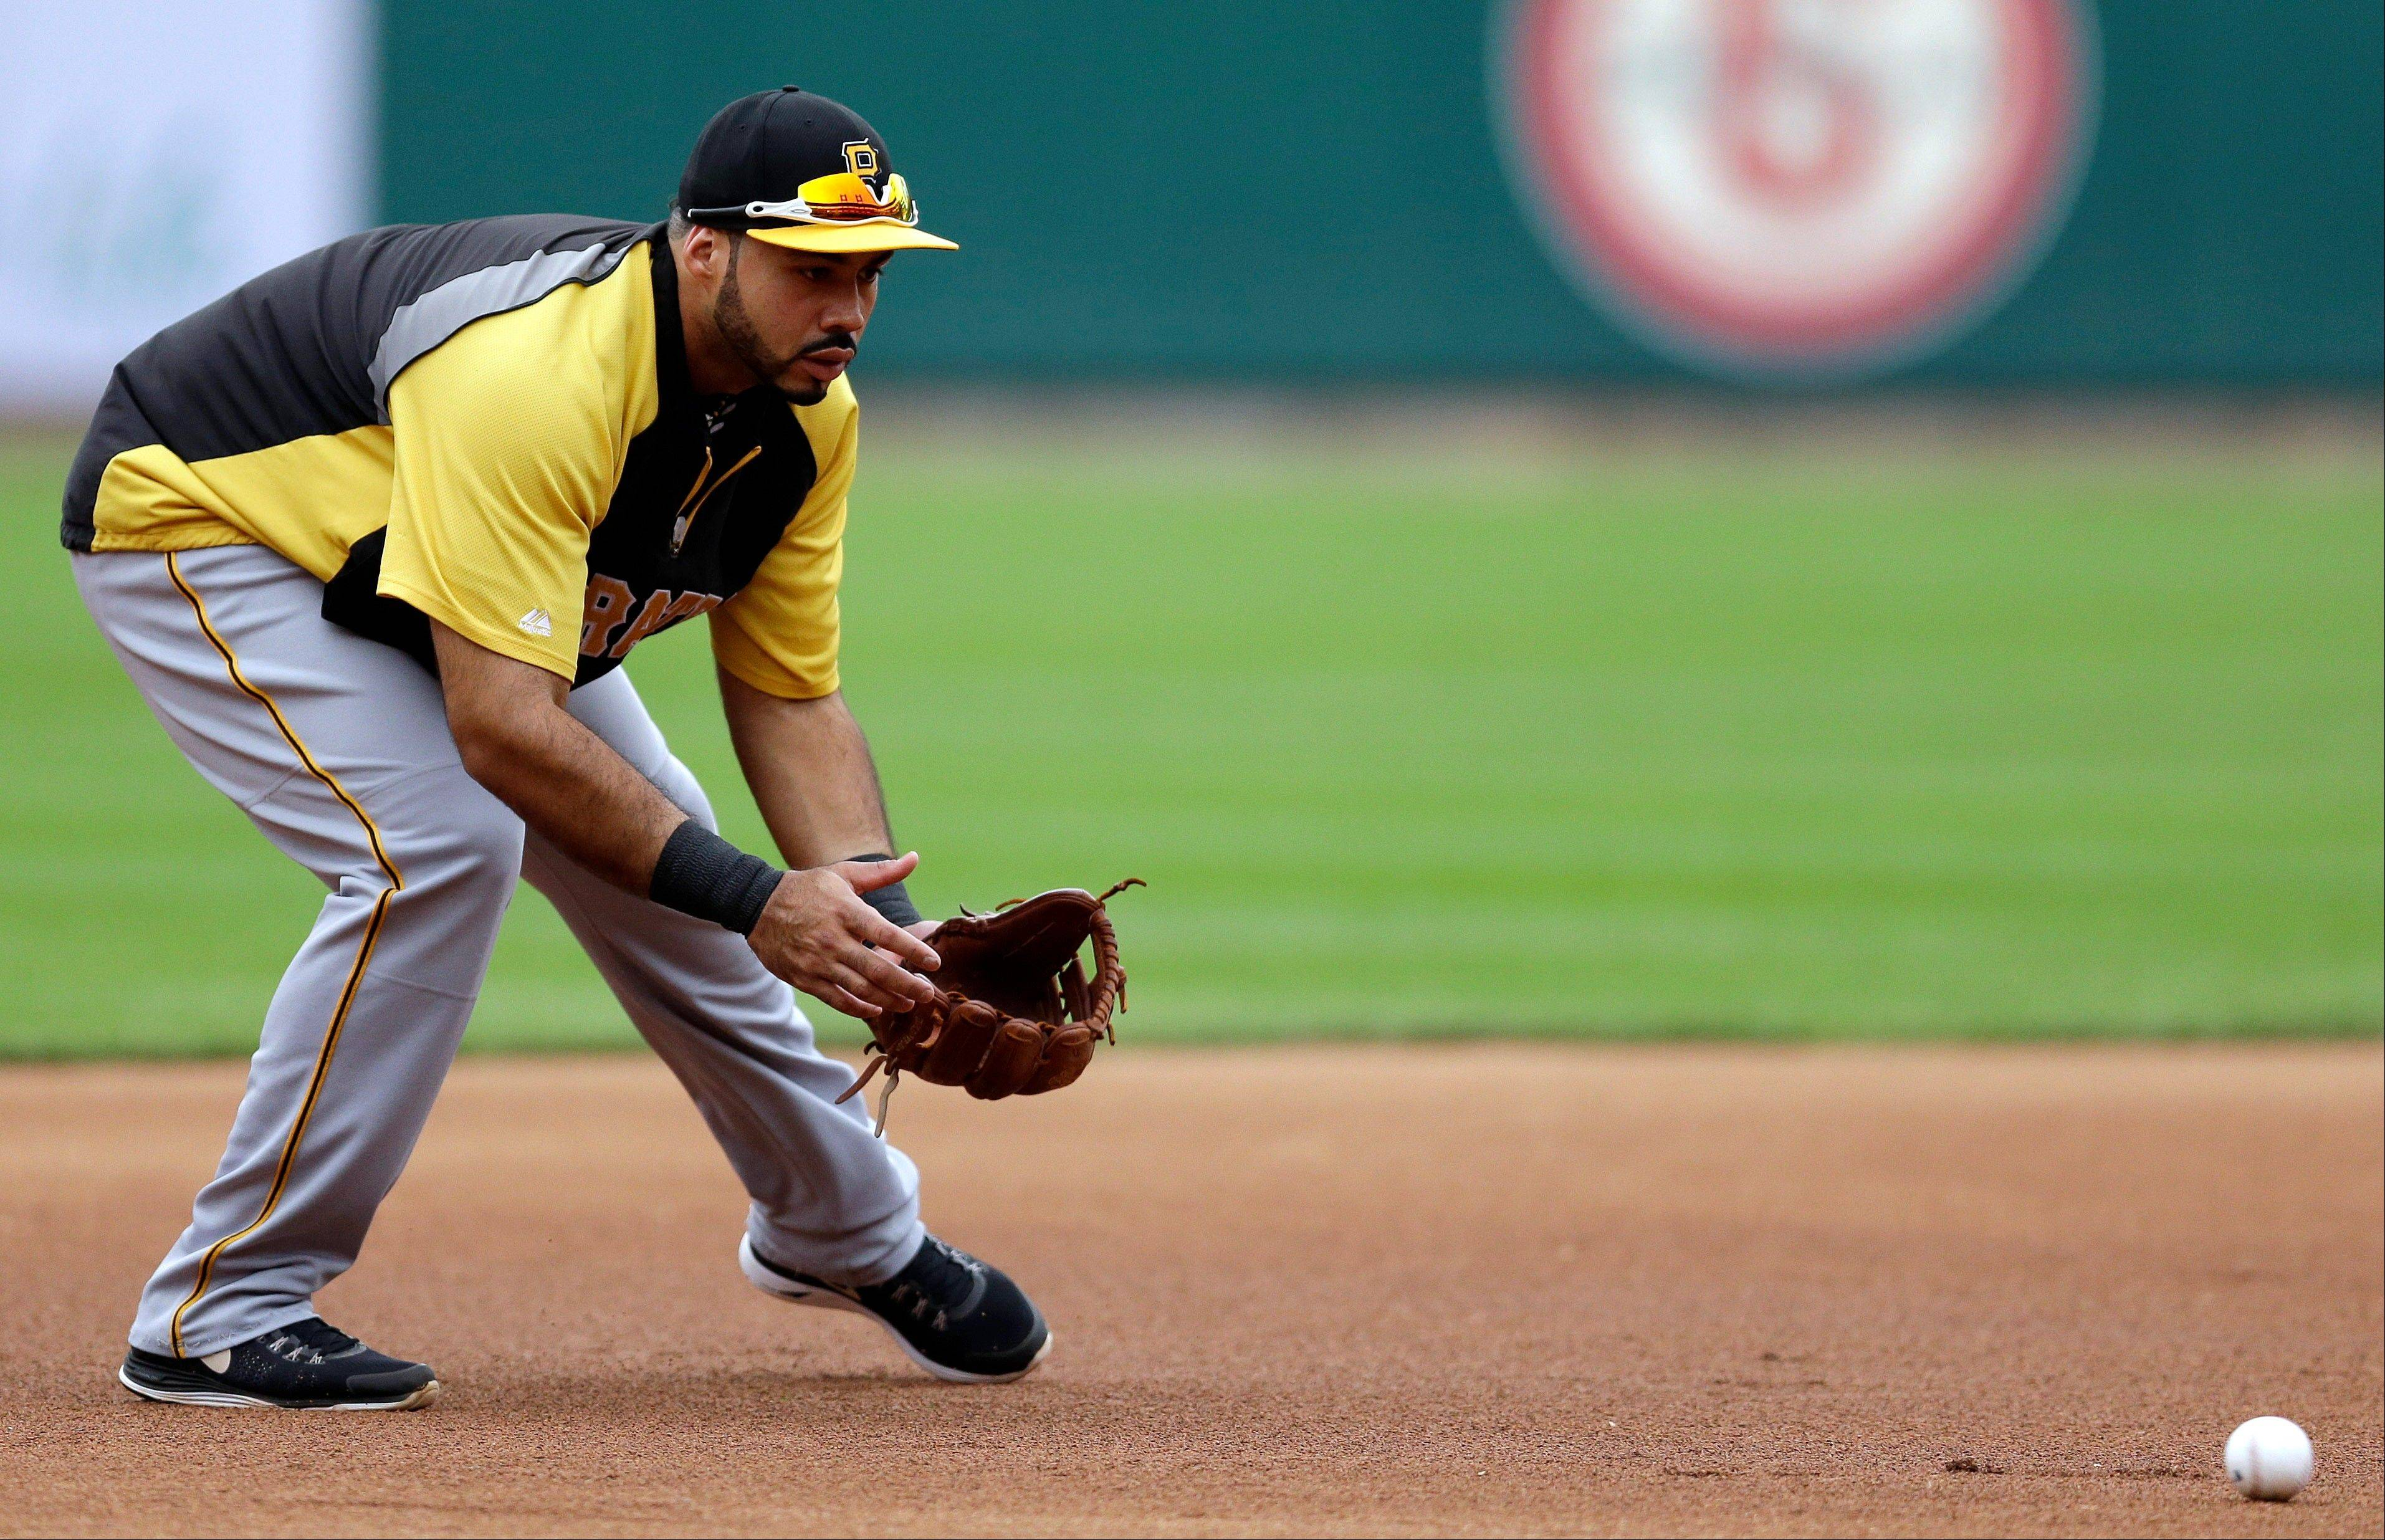 Pittsburgh Pirates third baseman Pedro Alvarez fields a ball during a workout Wednesday in Busch Stadium in St. Louis. Game 1 of the National League Division Series baseball playoff between the between the Pirates and the Cardinals is scheduled for Thursday.